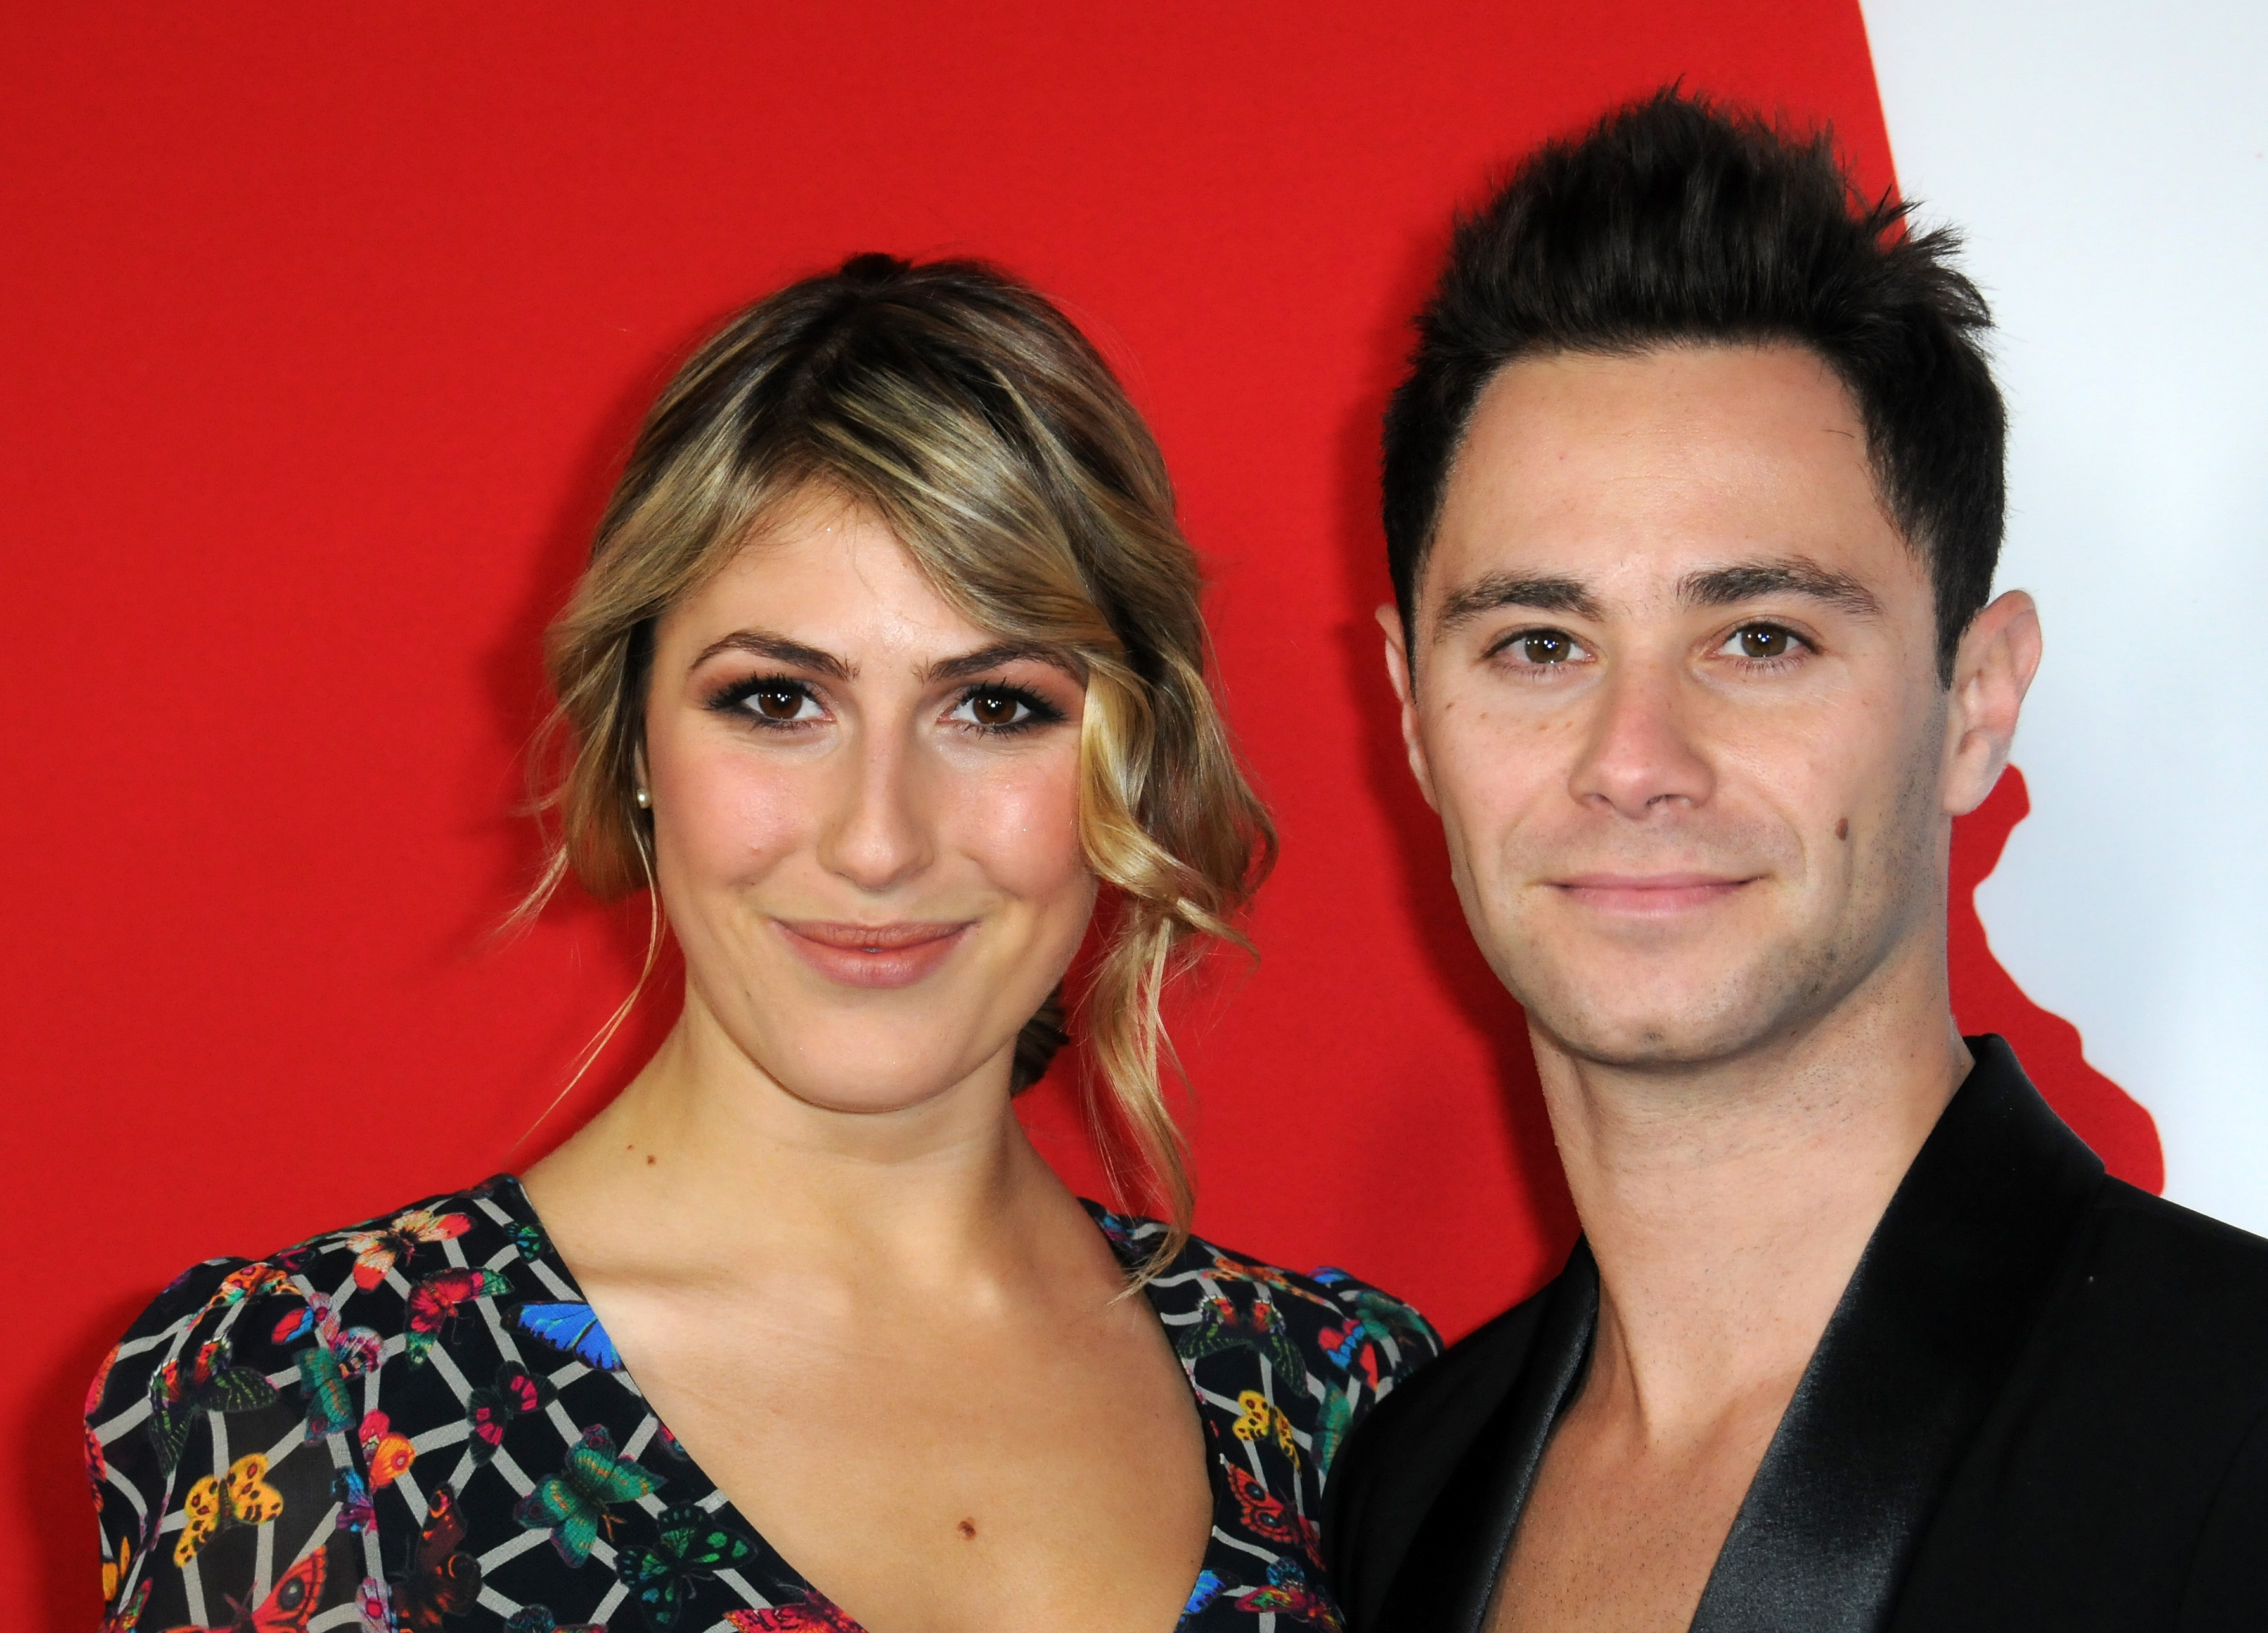 Dancers Emma Slater and Sasha Farber arrive for the Premiere Of Summit Entertainment's  Warm Bodies   held at ArcLight Cinerama Dome on January 29, 2013 in Hollywood, California.